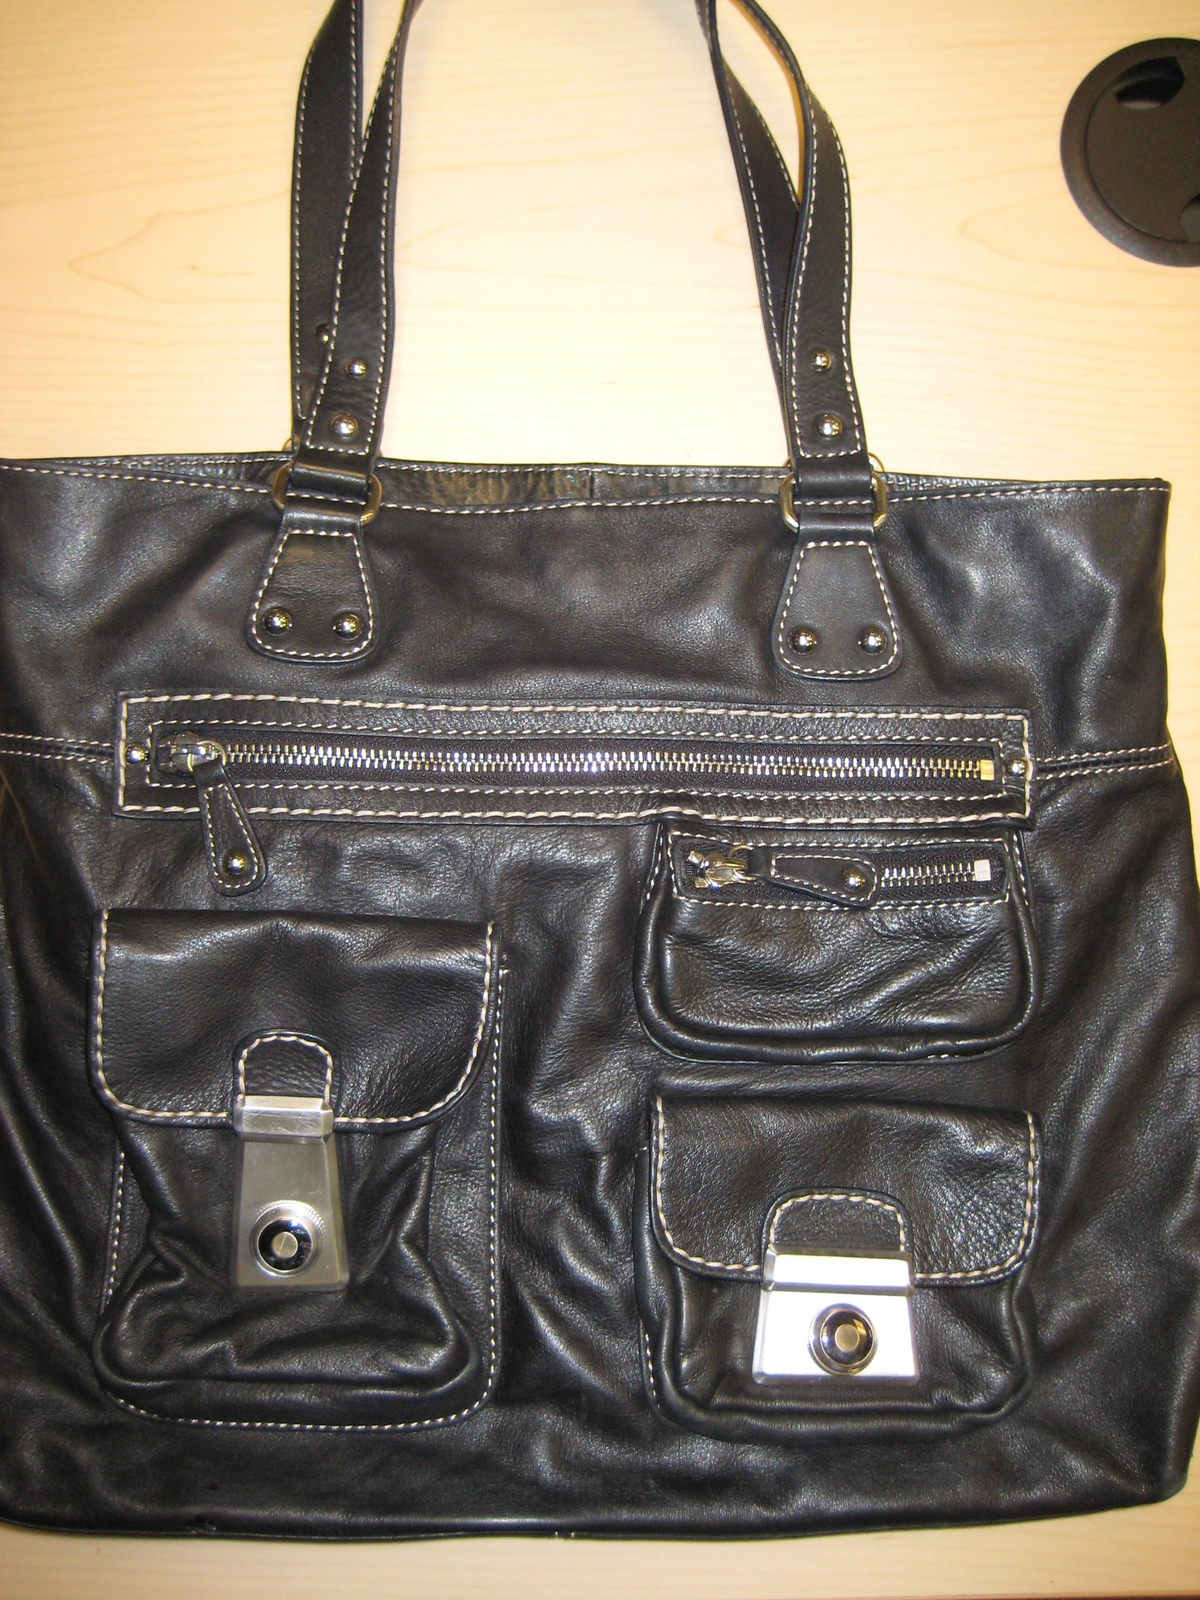 950952ad571a Kate Landry Bag  1 customer review and 6 listings